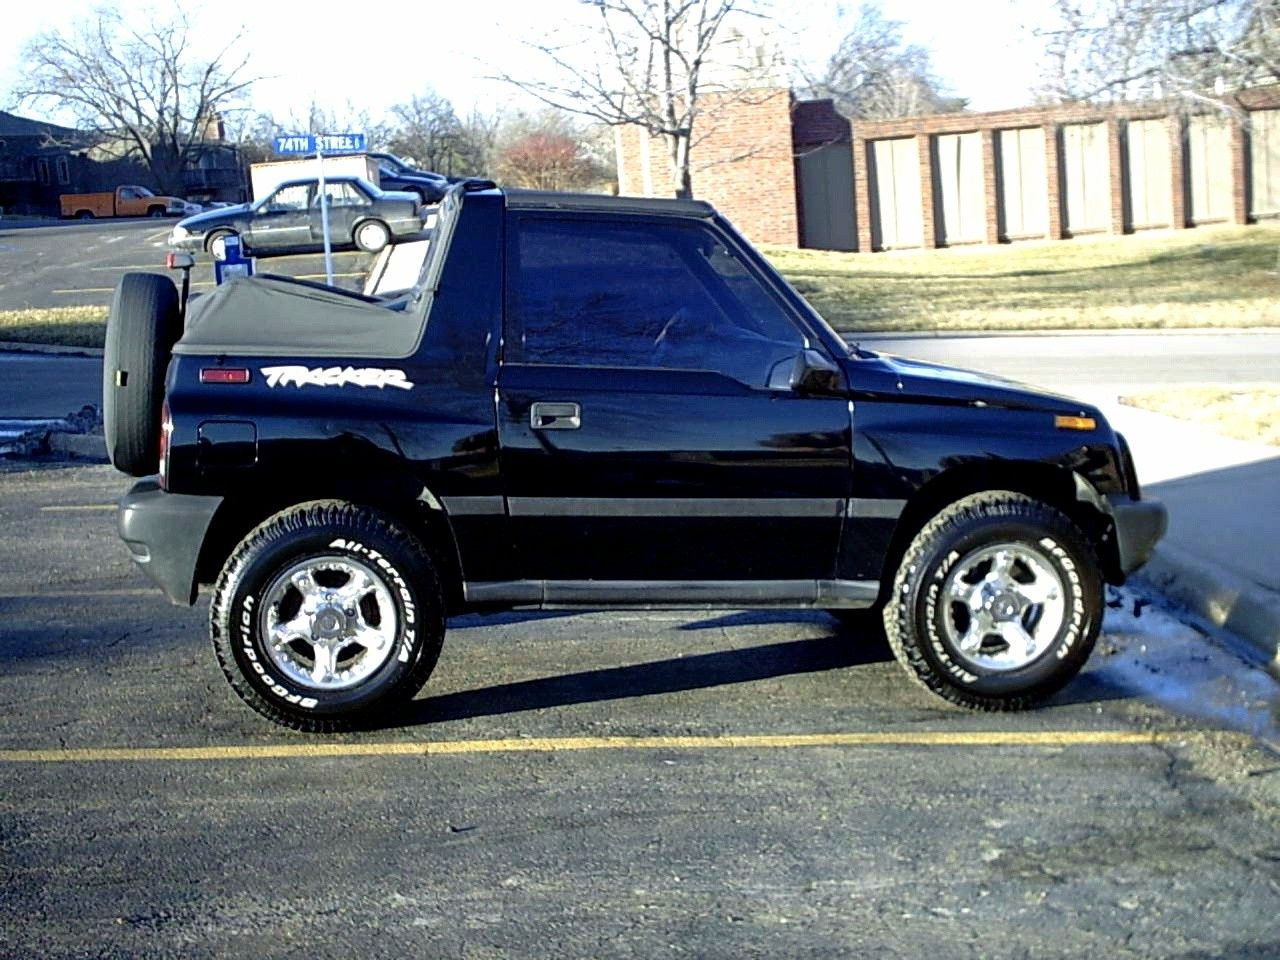 1997 geo tracker 2 dr std convertible geo pinterest convertible cars and 4x4. Black Bedroom Furniture Sets. Home Design Ideas